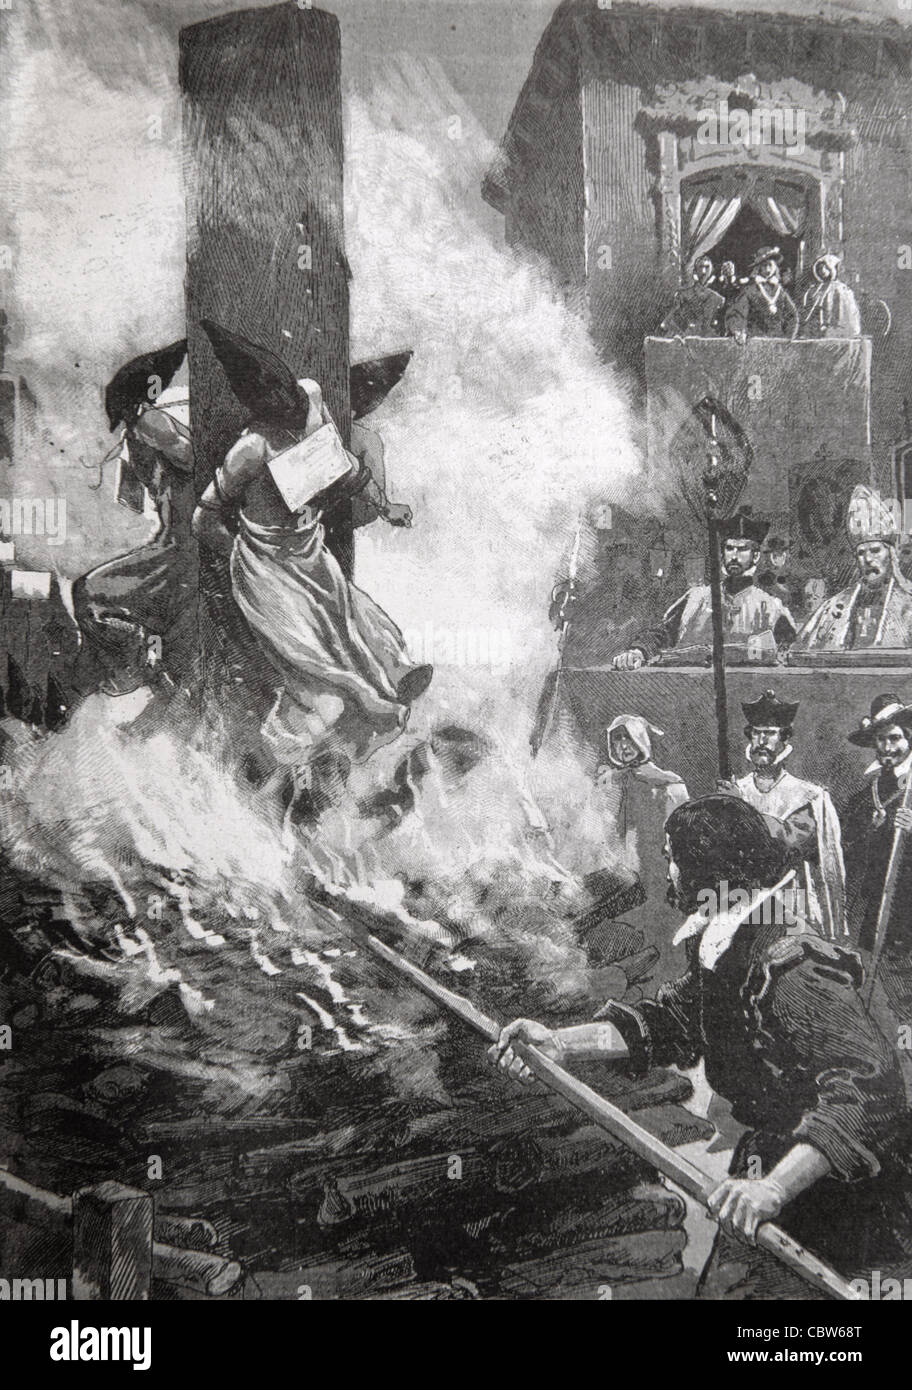 witchcraft and the spanish inquisition The spanish inquisition was founded in 1478 by ferdinand and among the spanish authors the category superstitions includes trials related to witchcraft.